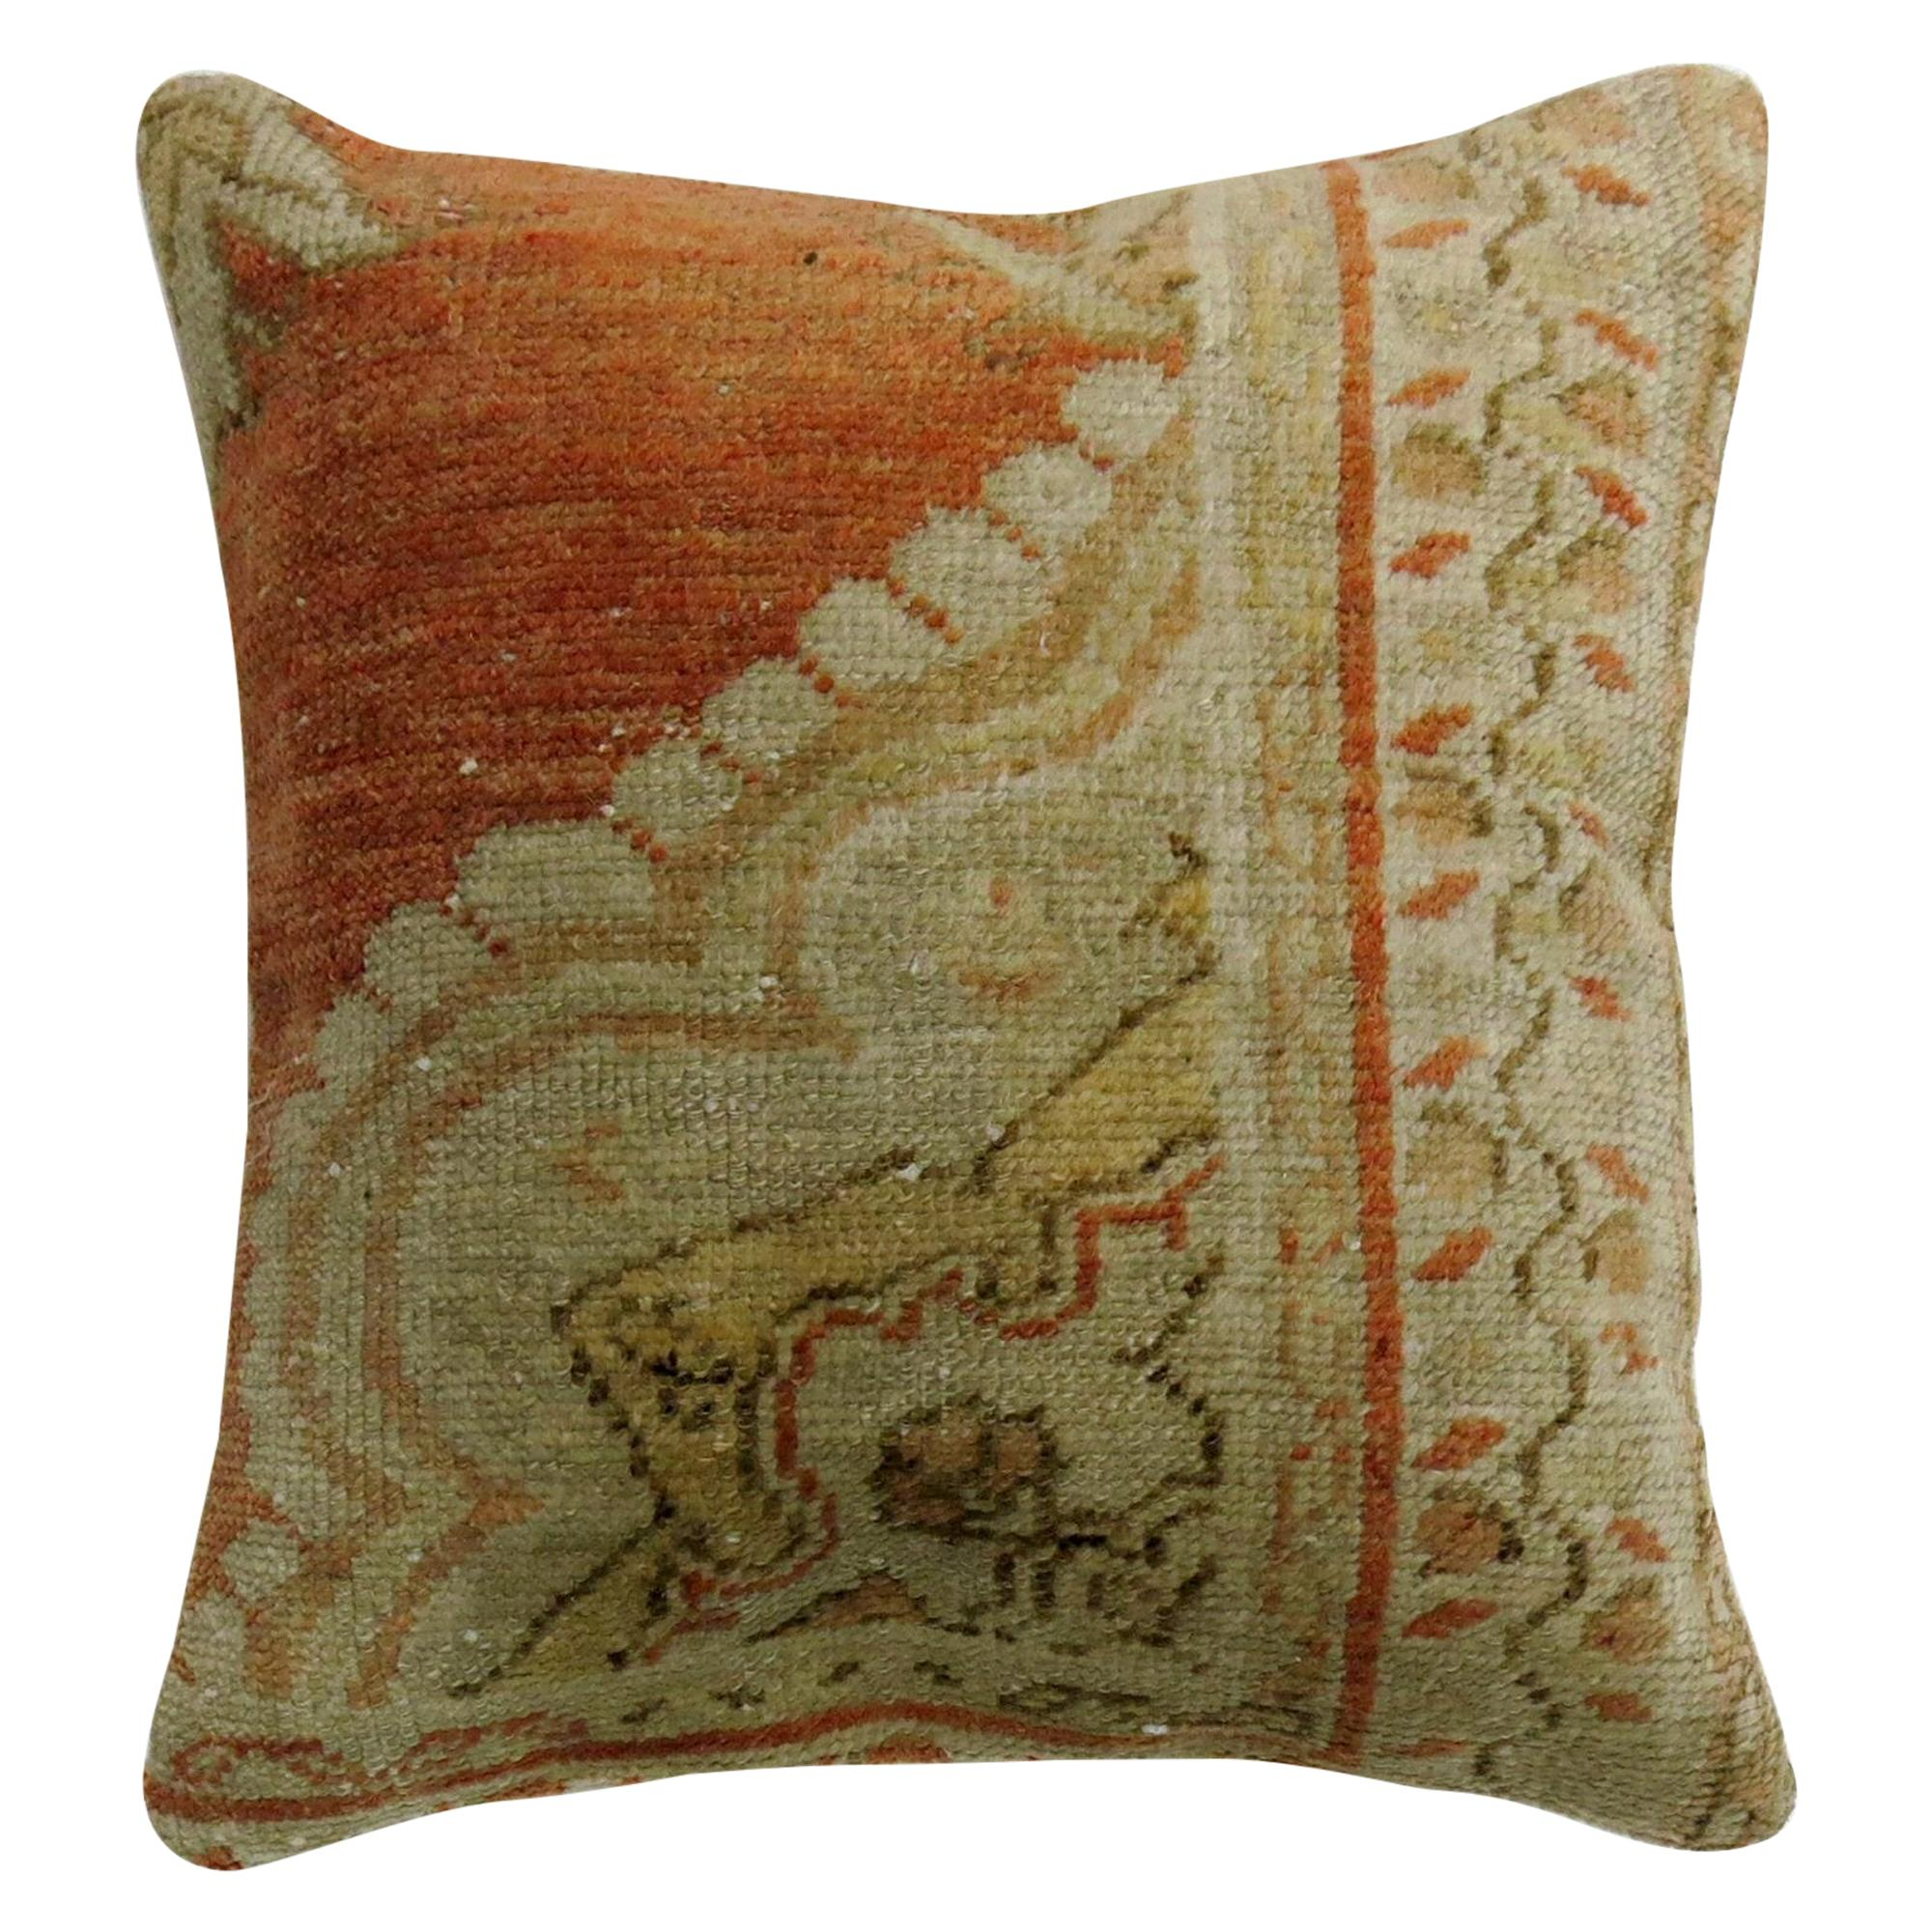 Coral Wool Pillow from a 20th Century Turkish Oushak Rug